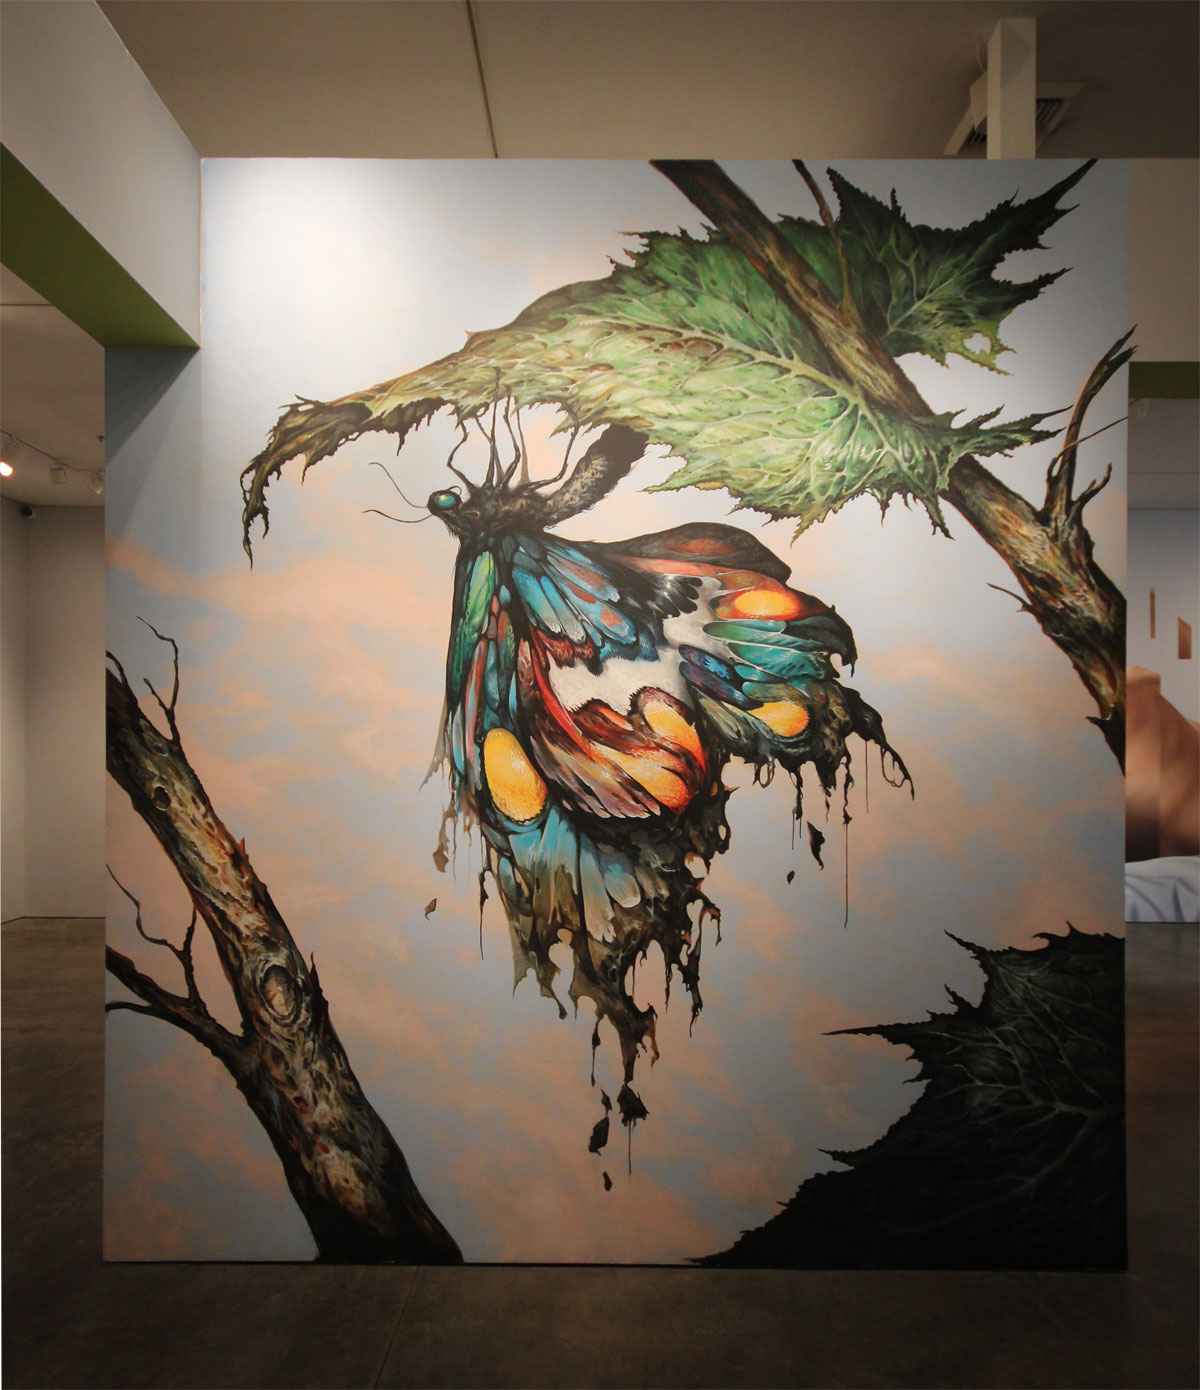 esao andrews long beach museum of art vitality and verve